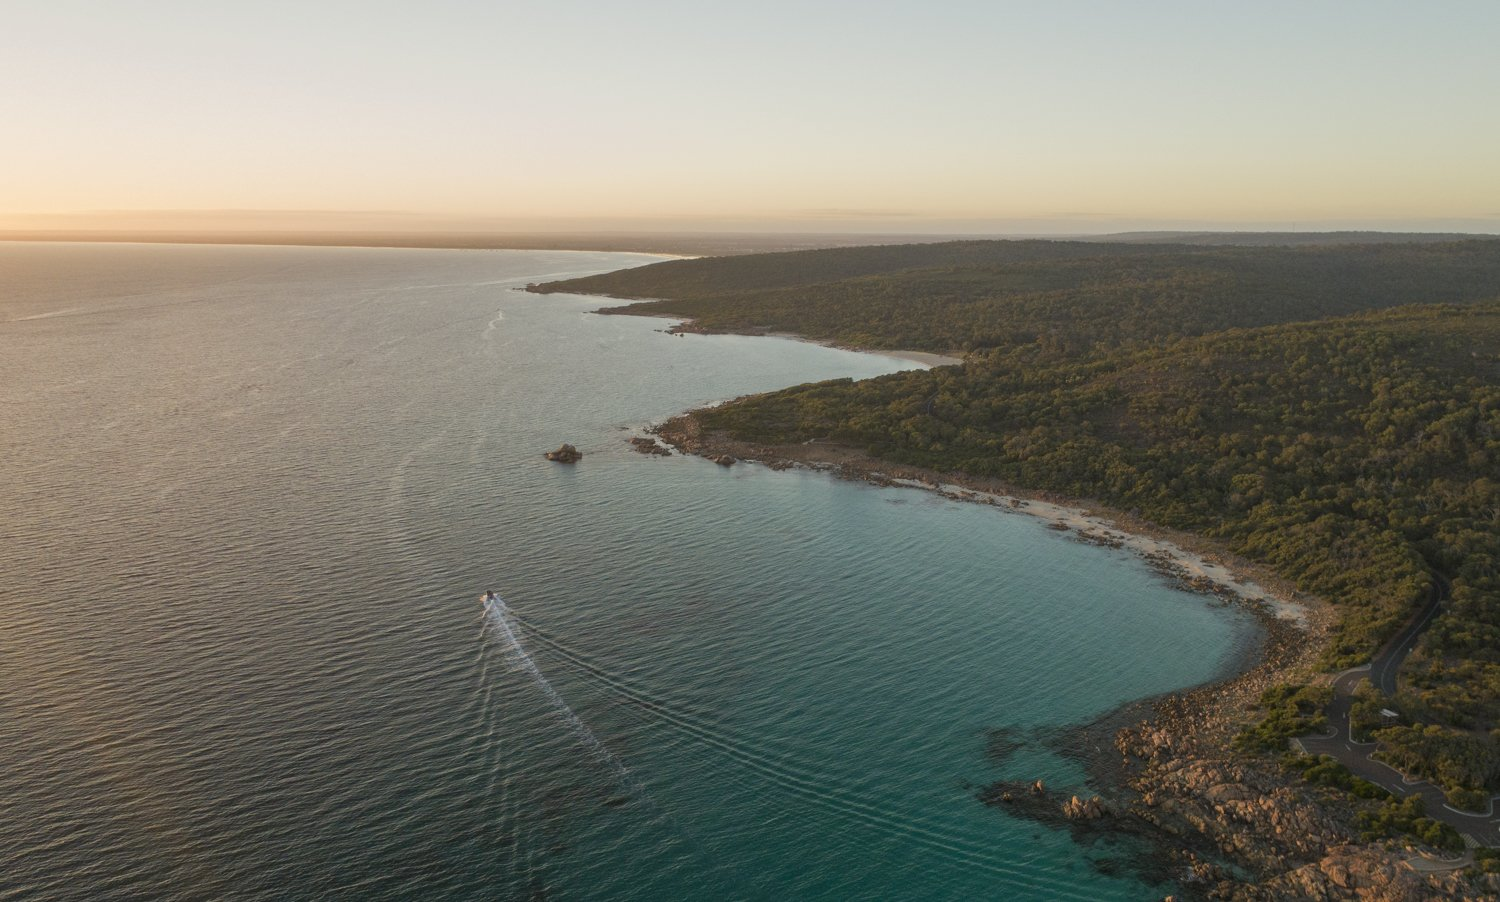 wide aerial scape in south west australia